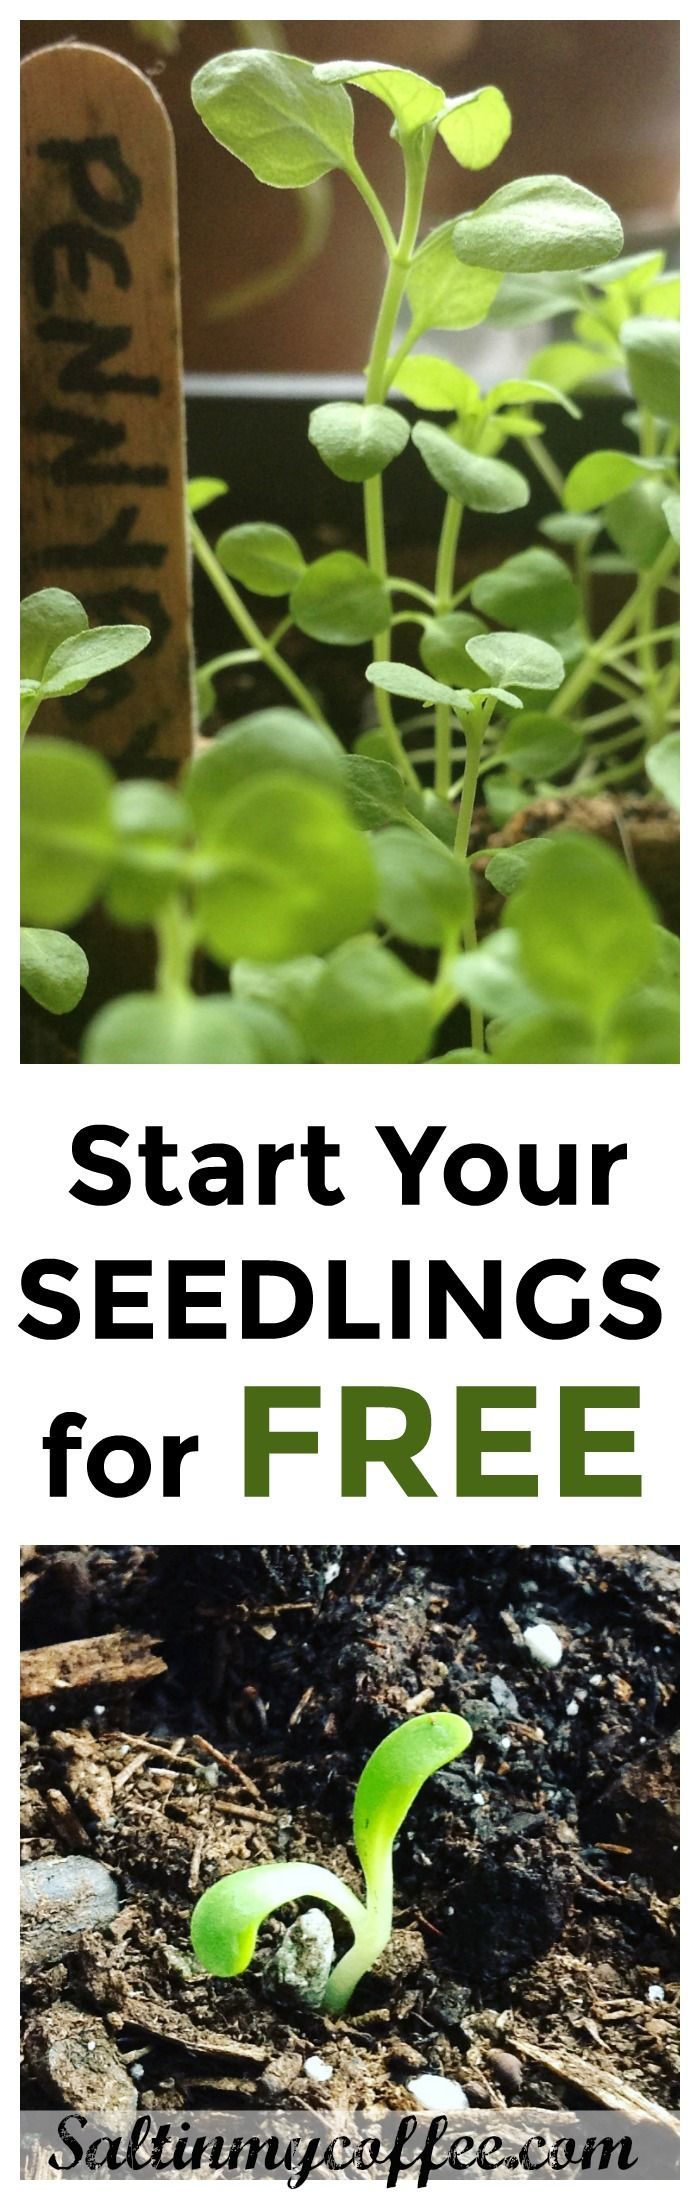 Frustrated by the cost of seed starting supplies? Do you wish you could start seedlings for free, and enjoy a bountiful garden without the cost of peat pots and seed-starting mix? Try these tips to start seedlings for free, year after year!